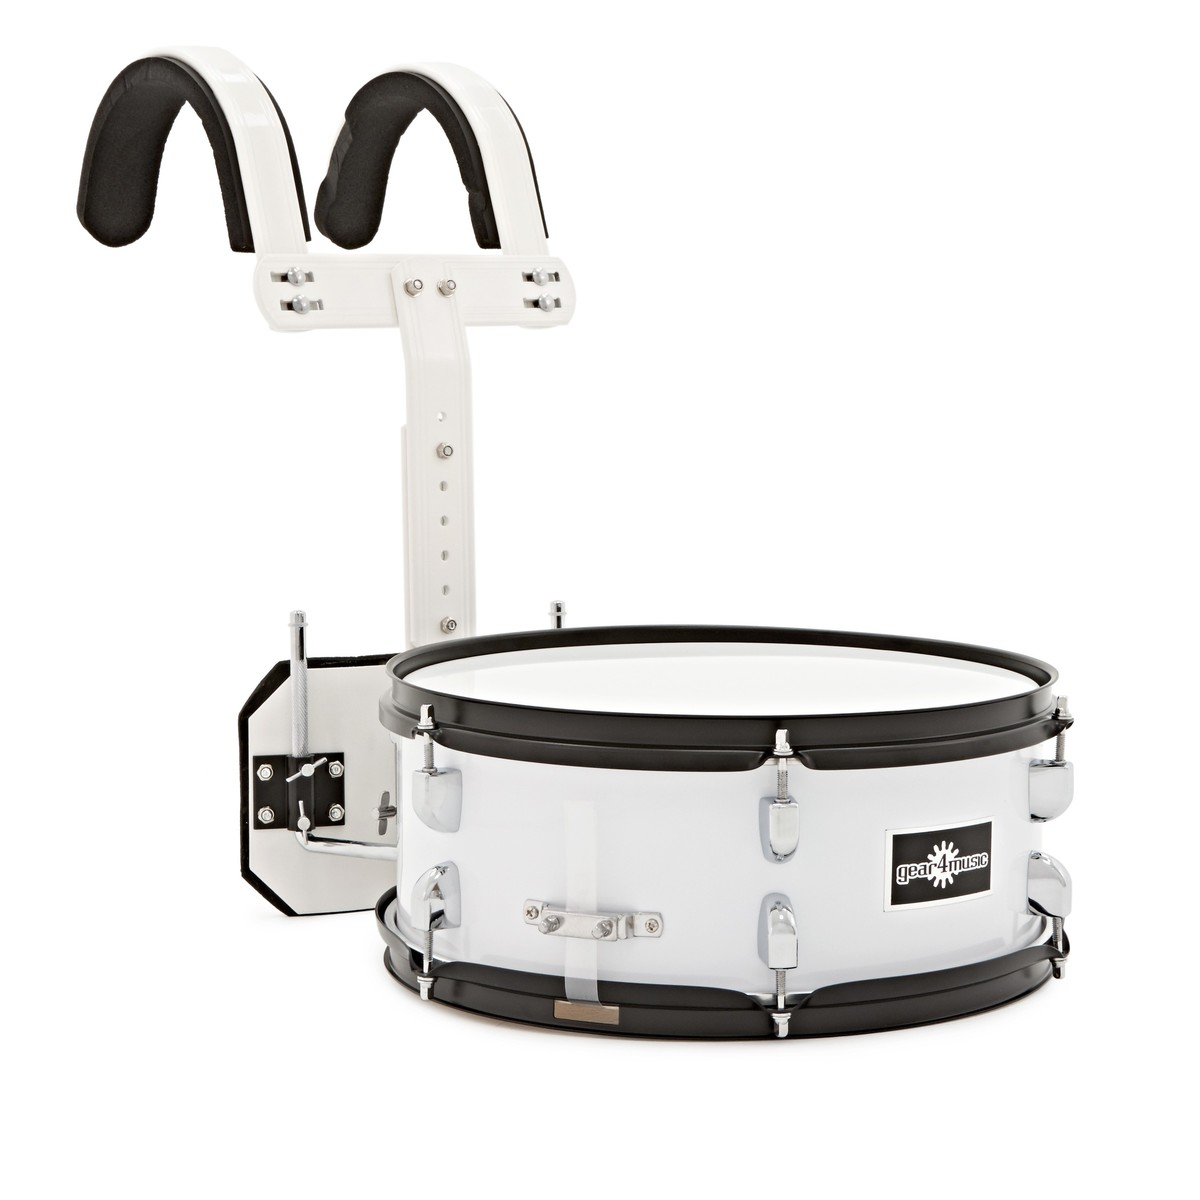 "14"" X 5.5"" Marching Snare Drum with Carrier by Gear4music - B-Stock"